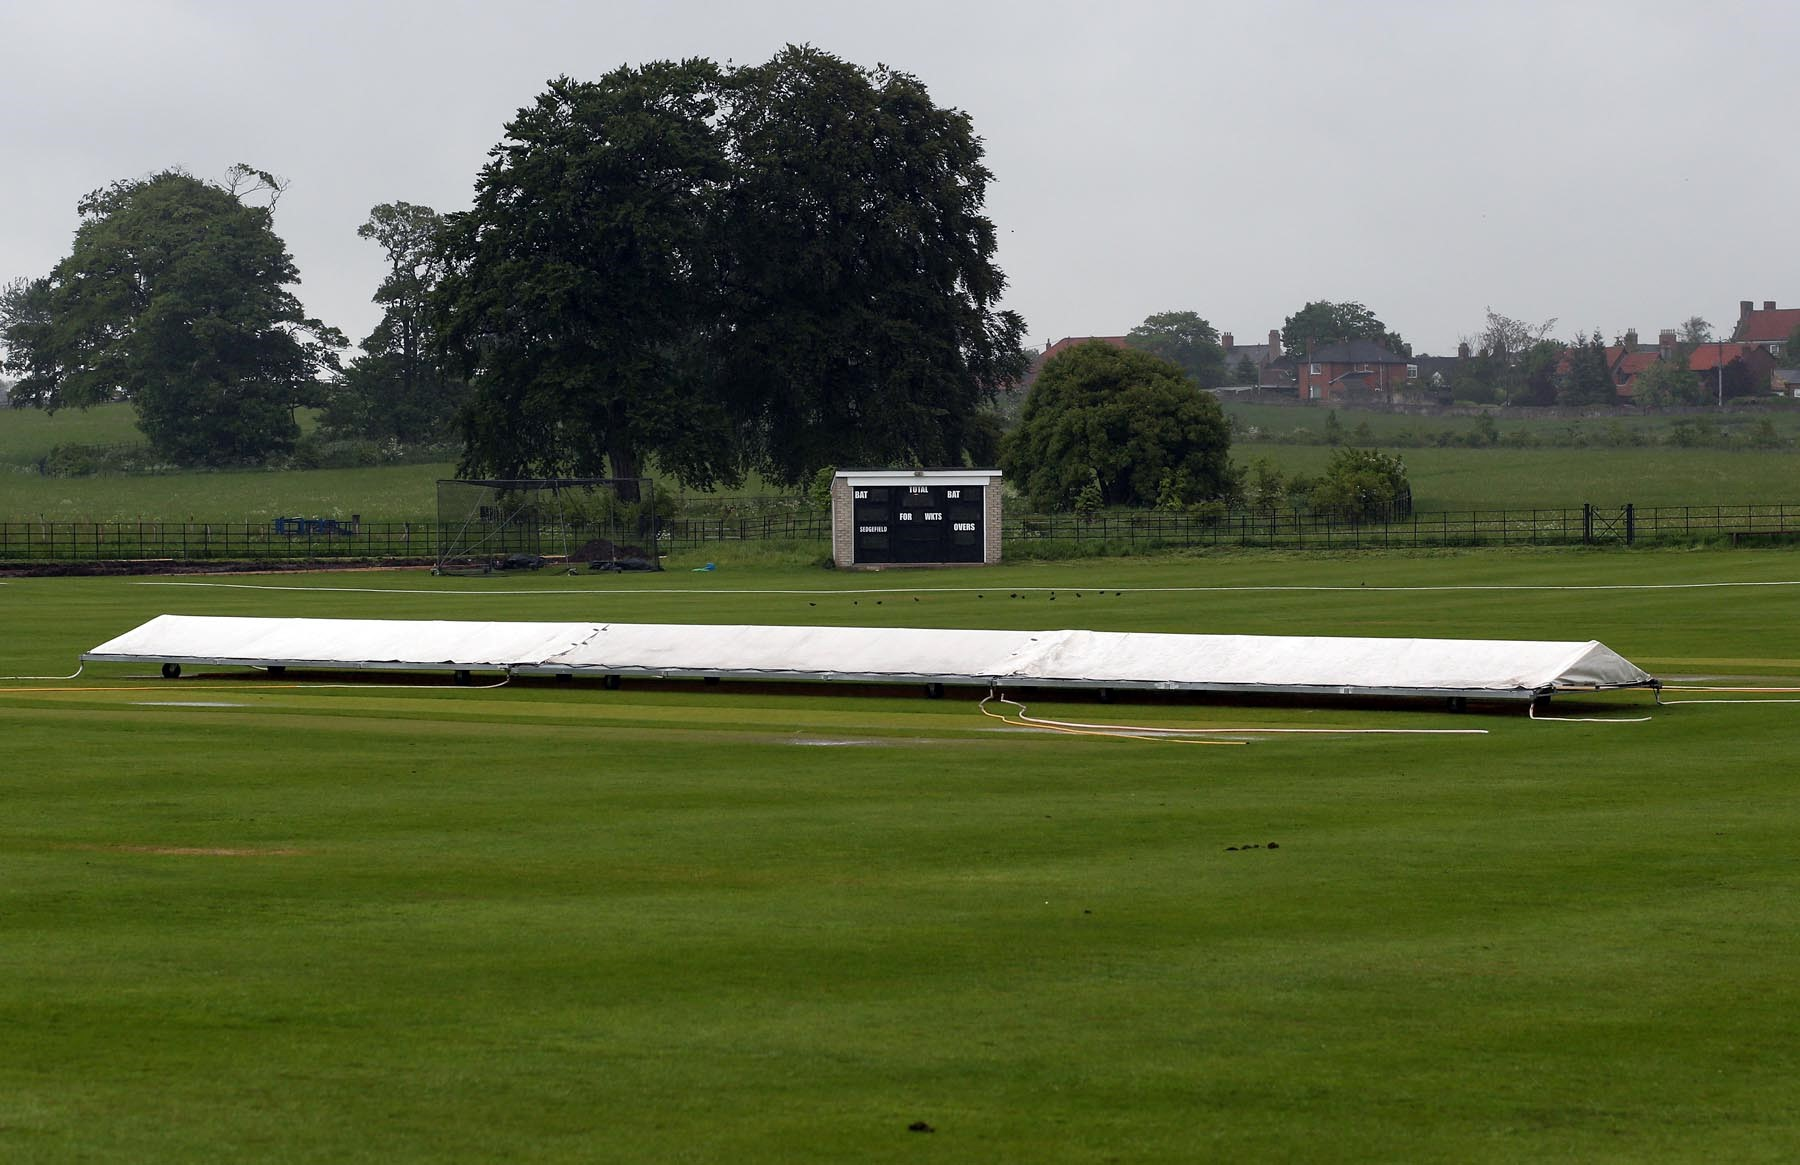 MATCH ABANDONED: Rain stops play at Sedgefield in the NYSD match between Sedgefield and Hartlepool